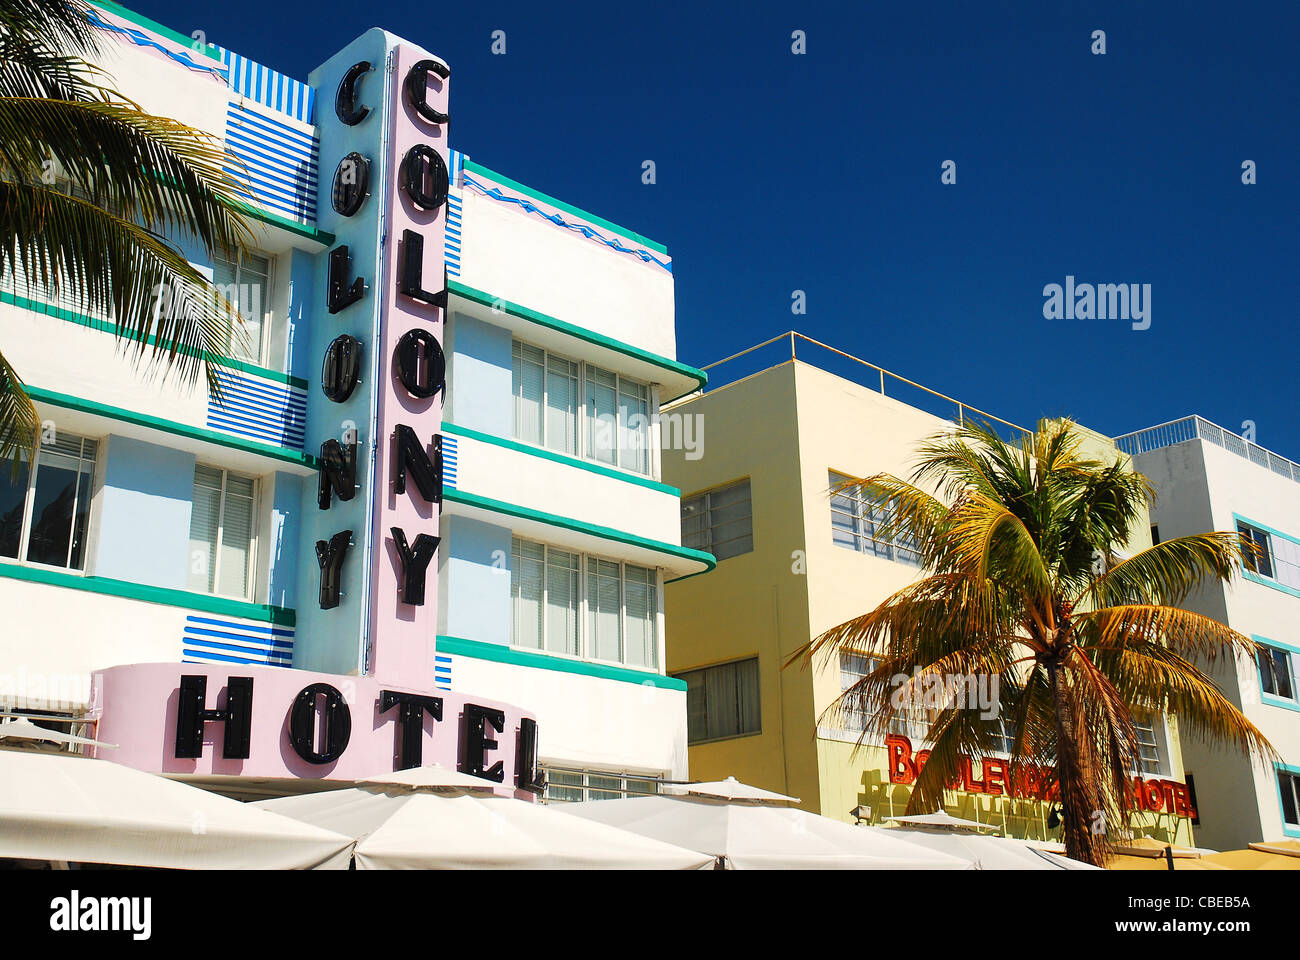 The Colony Hotel has become a symbol of the Art Deco revival in South Beach, Miami. - Stock Image